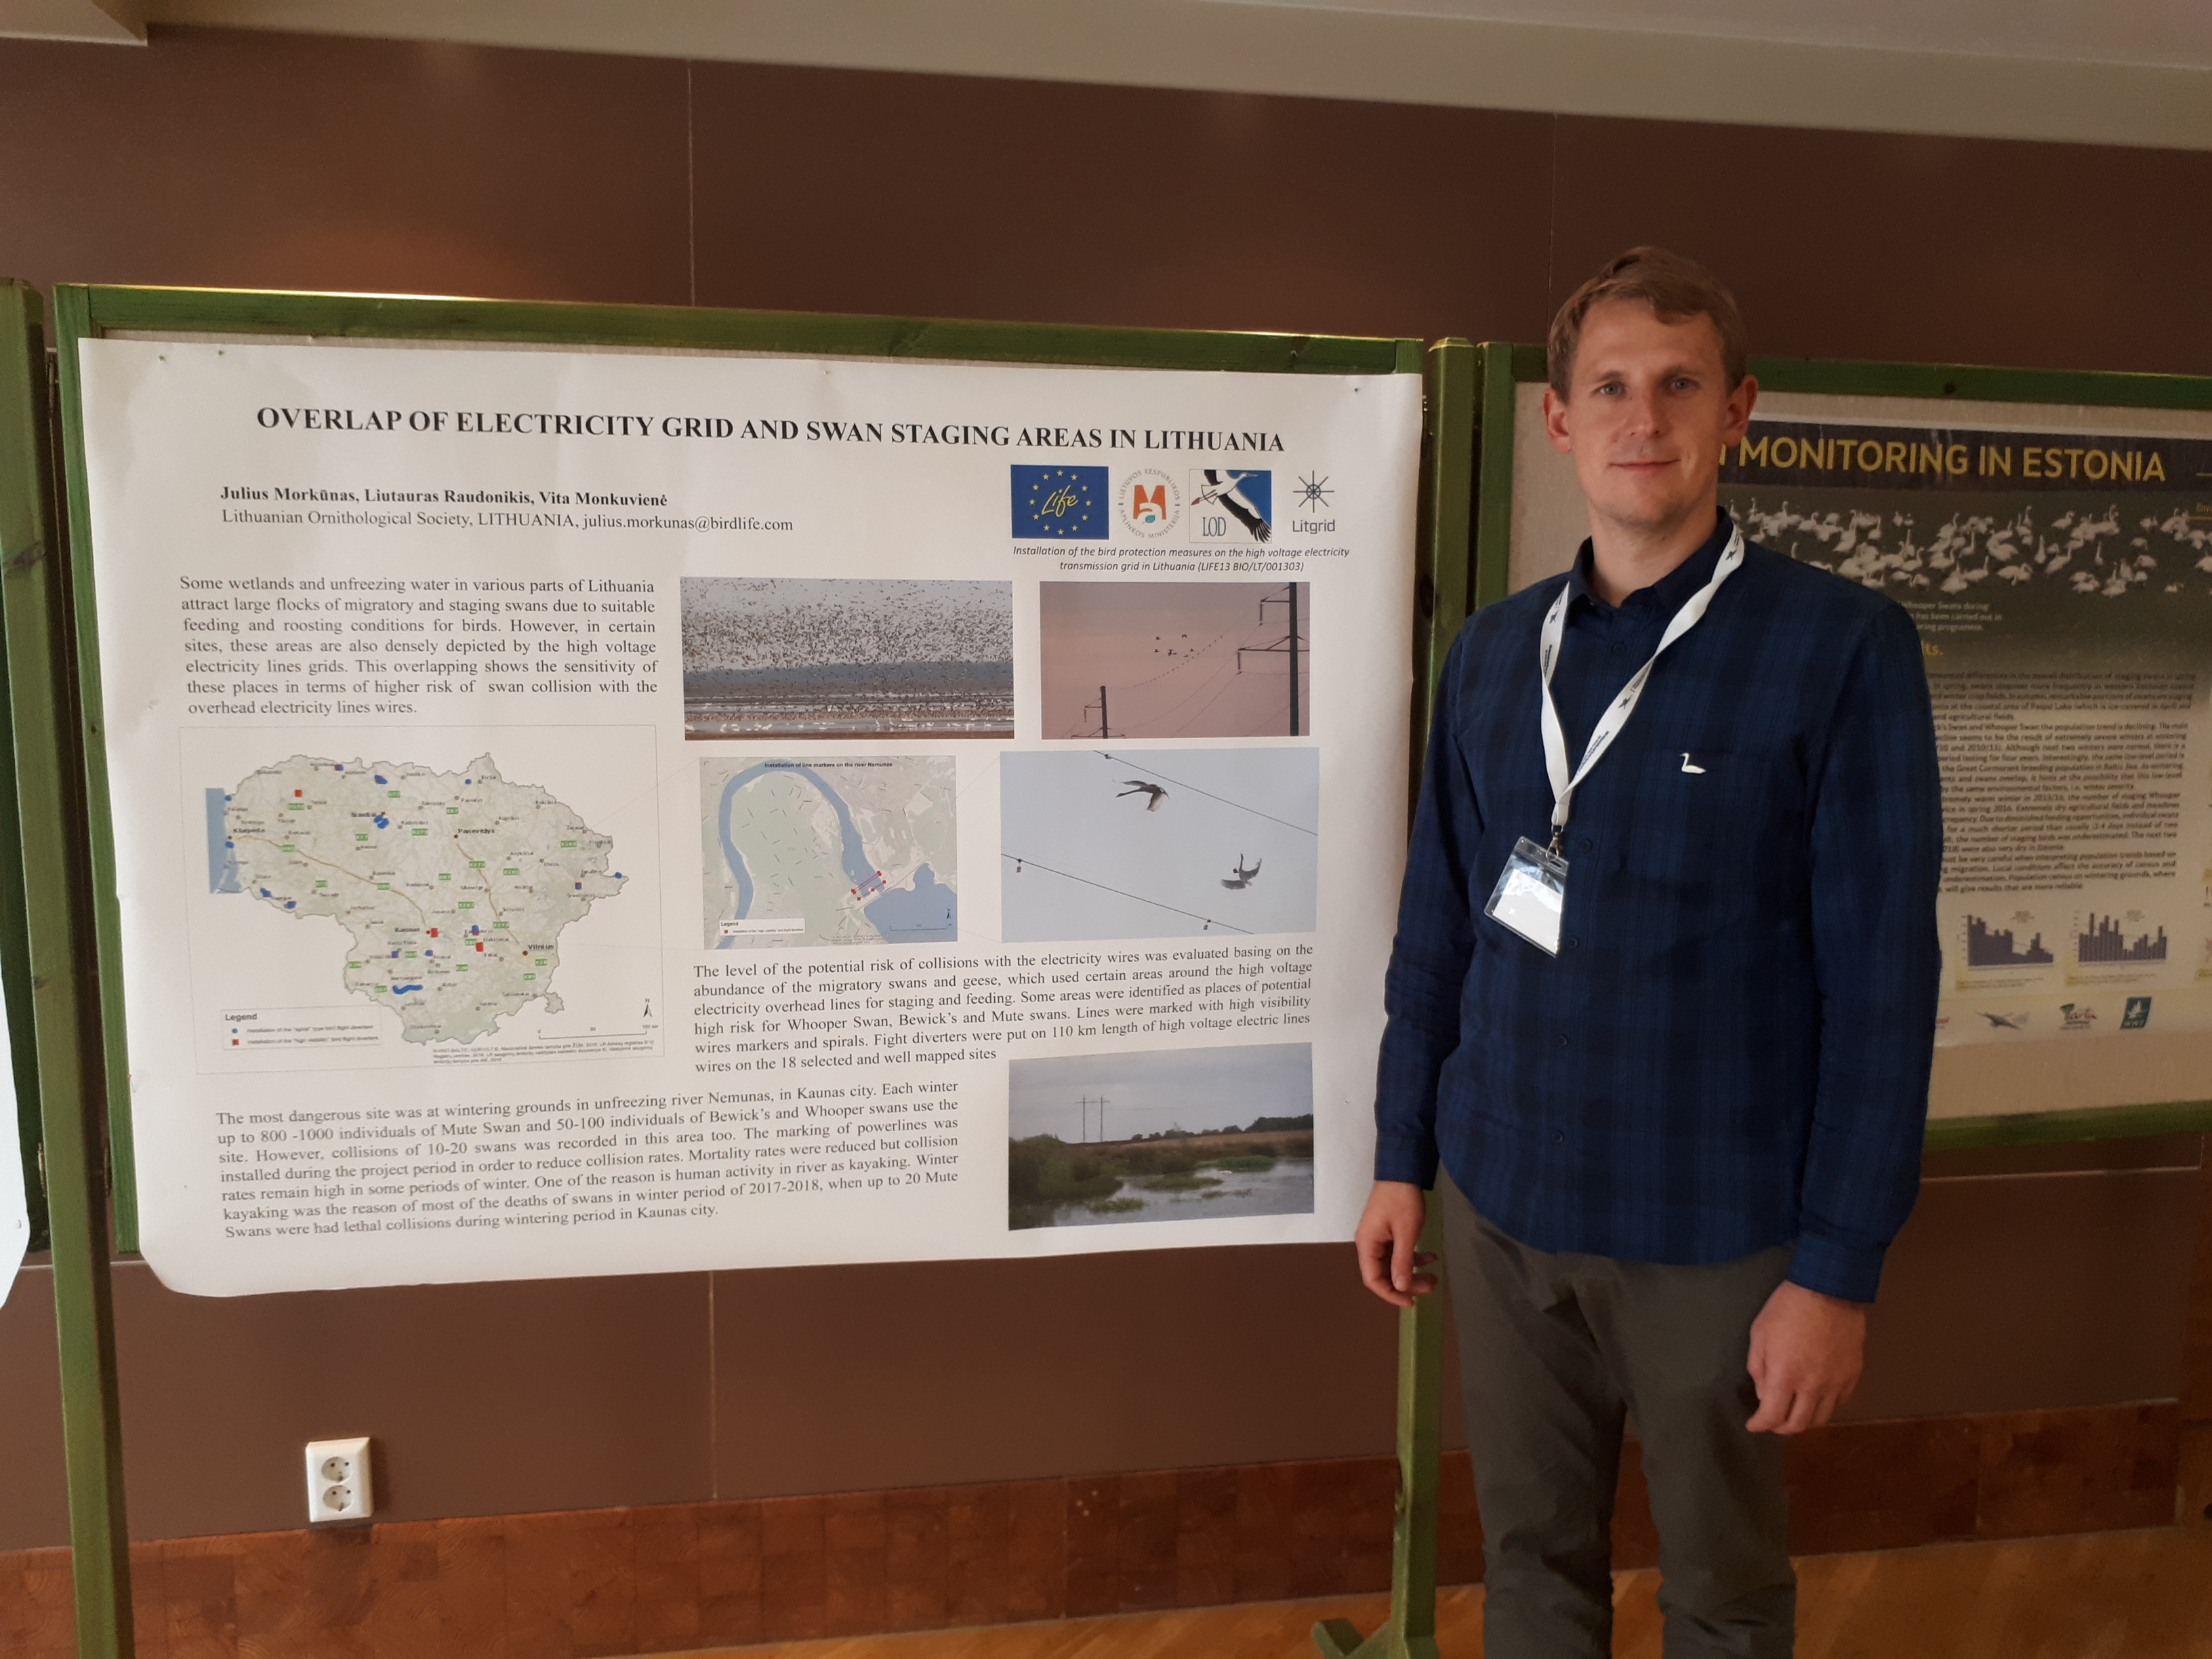 Project results were presented at International Swan Symposium in Estonia